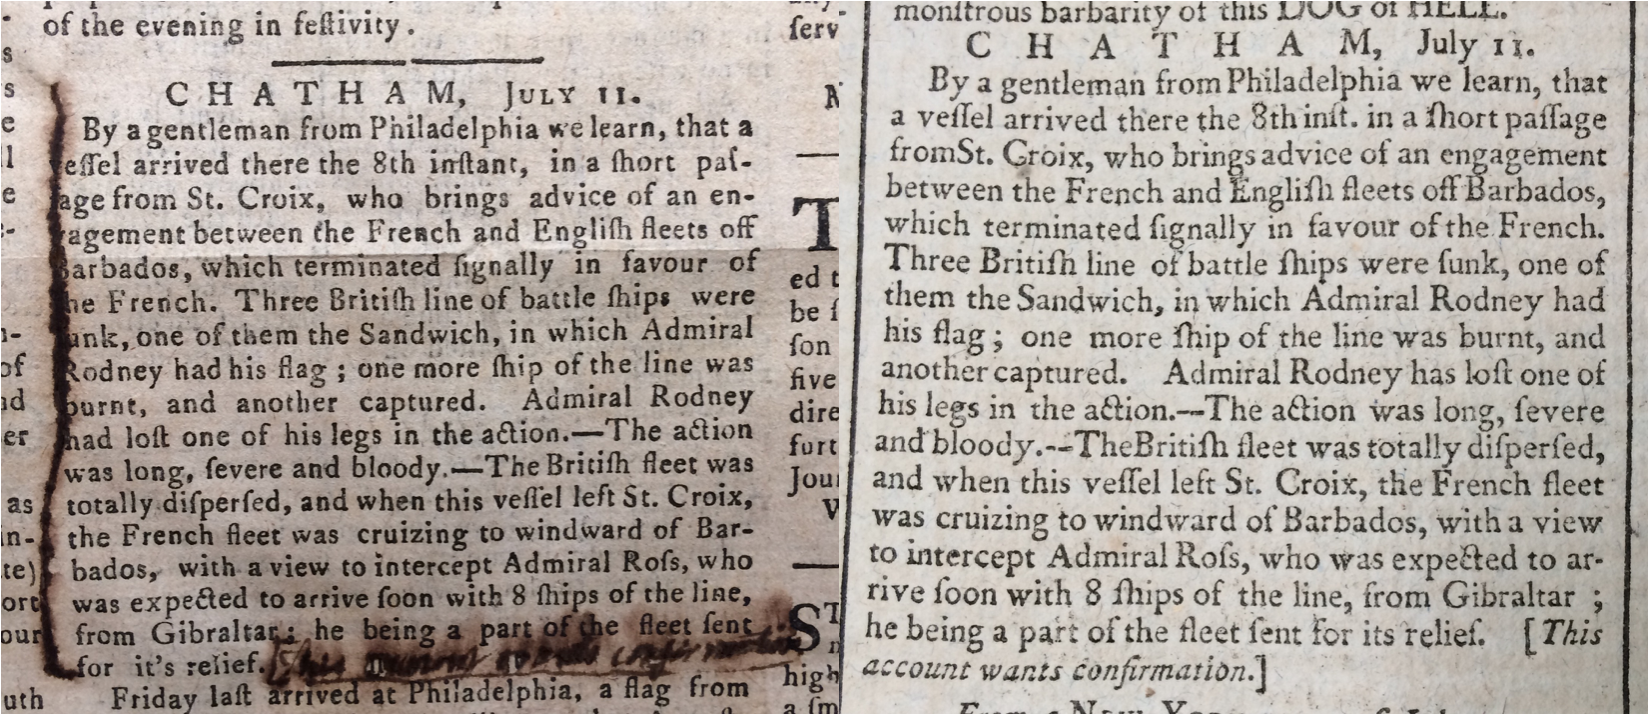 Newspaper article about the events of the Revolutionary war, 1781.